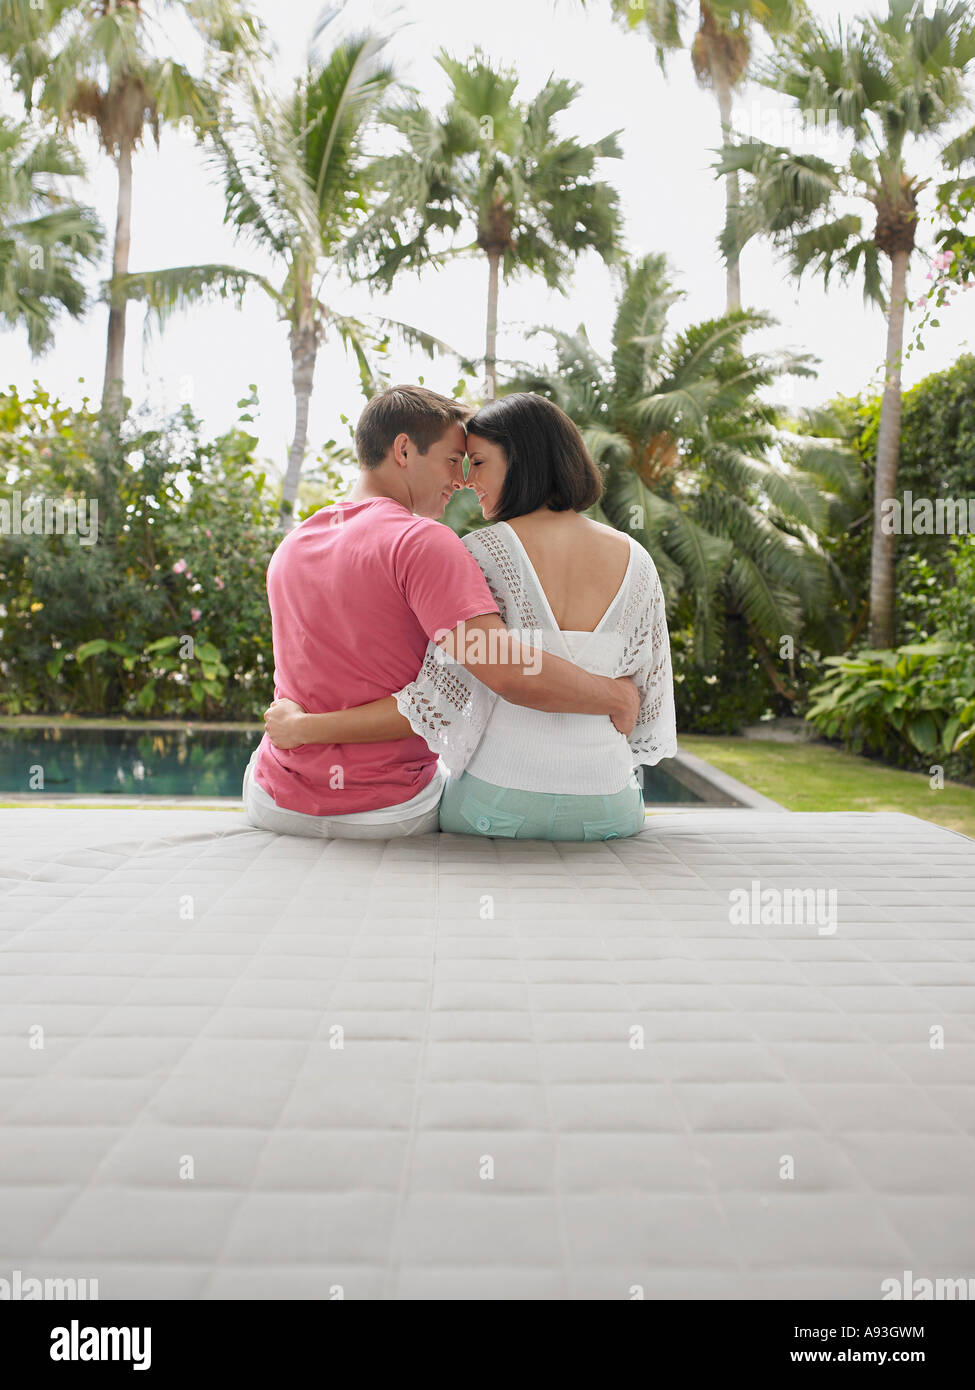 Affectionate Young Couple Relaxing in Garden Stock Photo